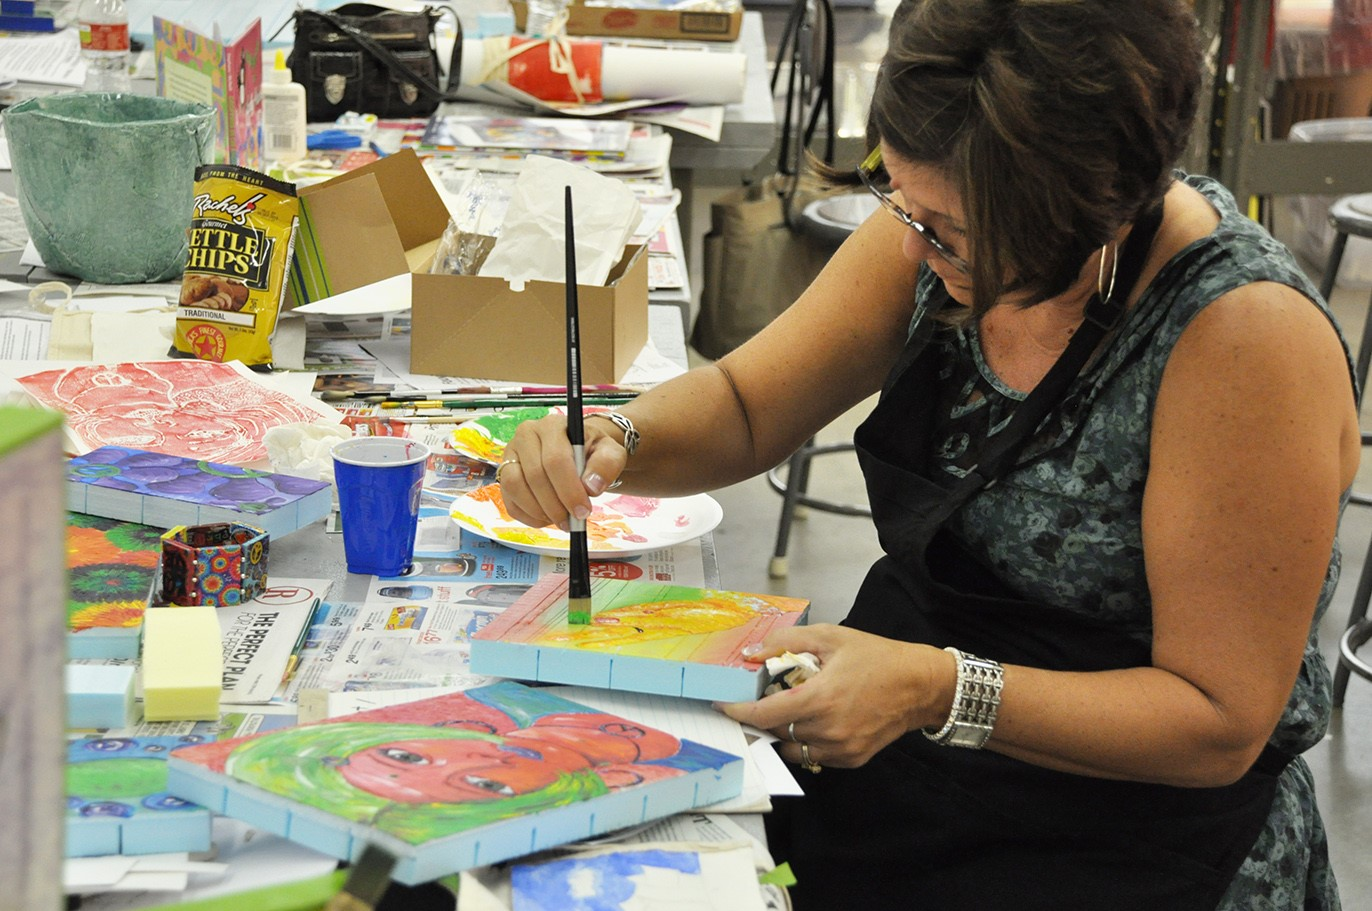 teacher workshop / art-making in the studio / educators